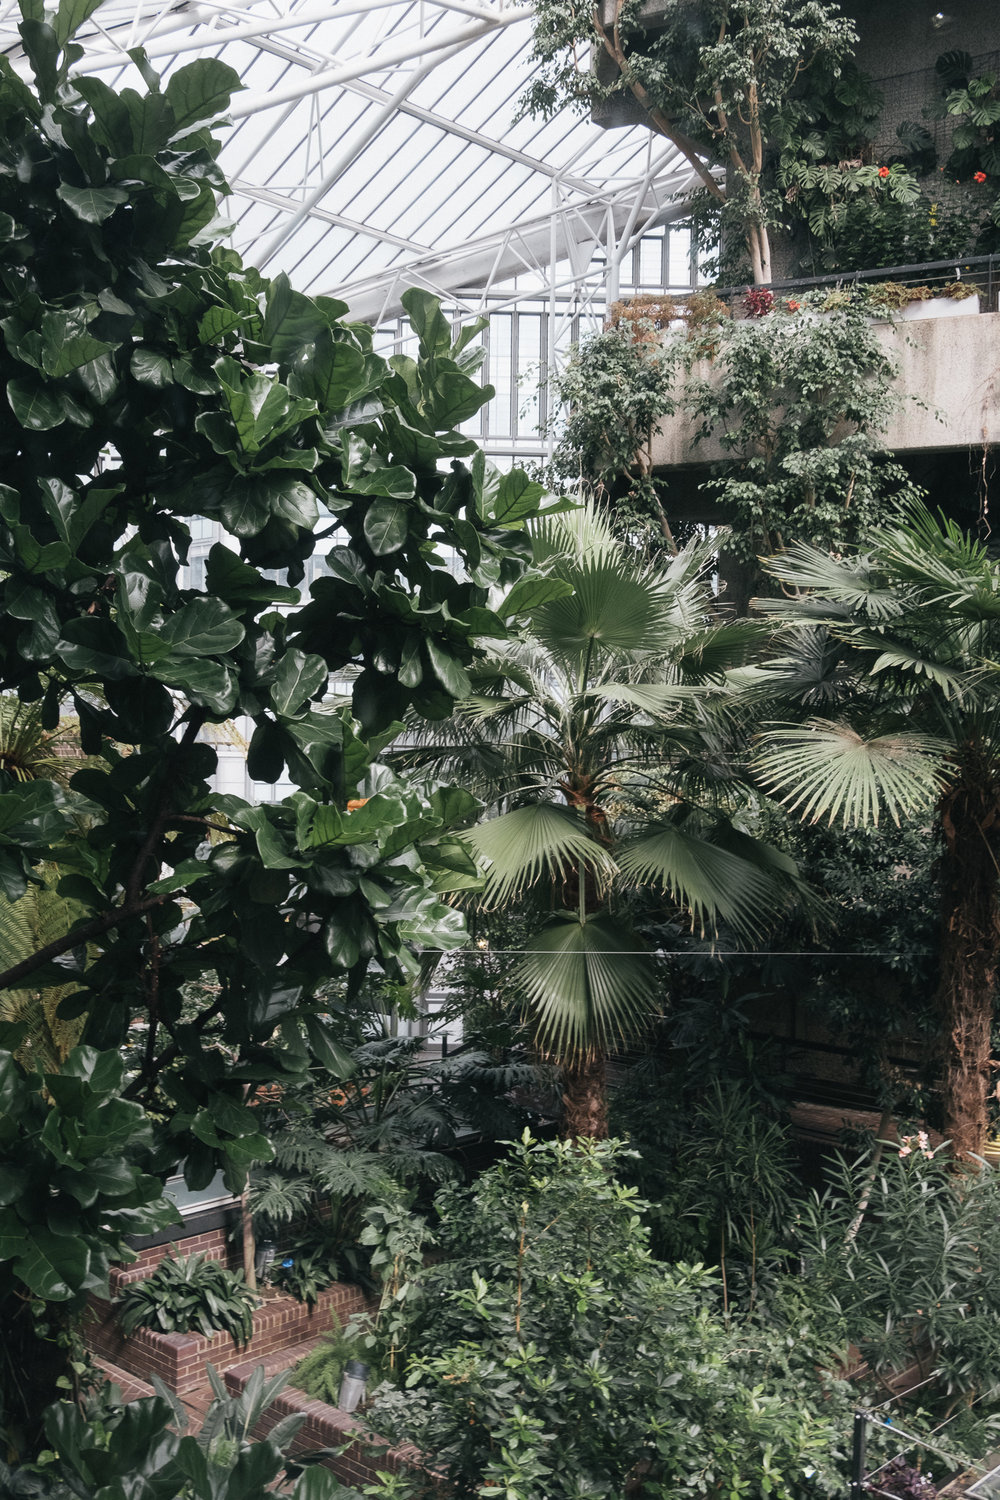 Conservatory is open to public only on Sundays